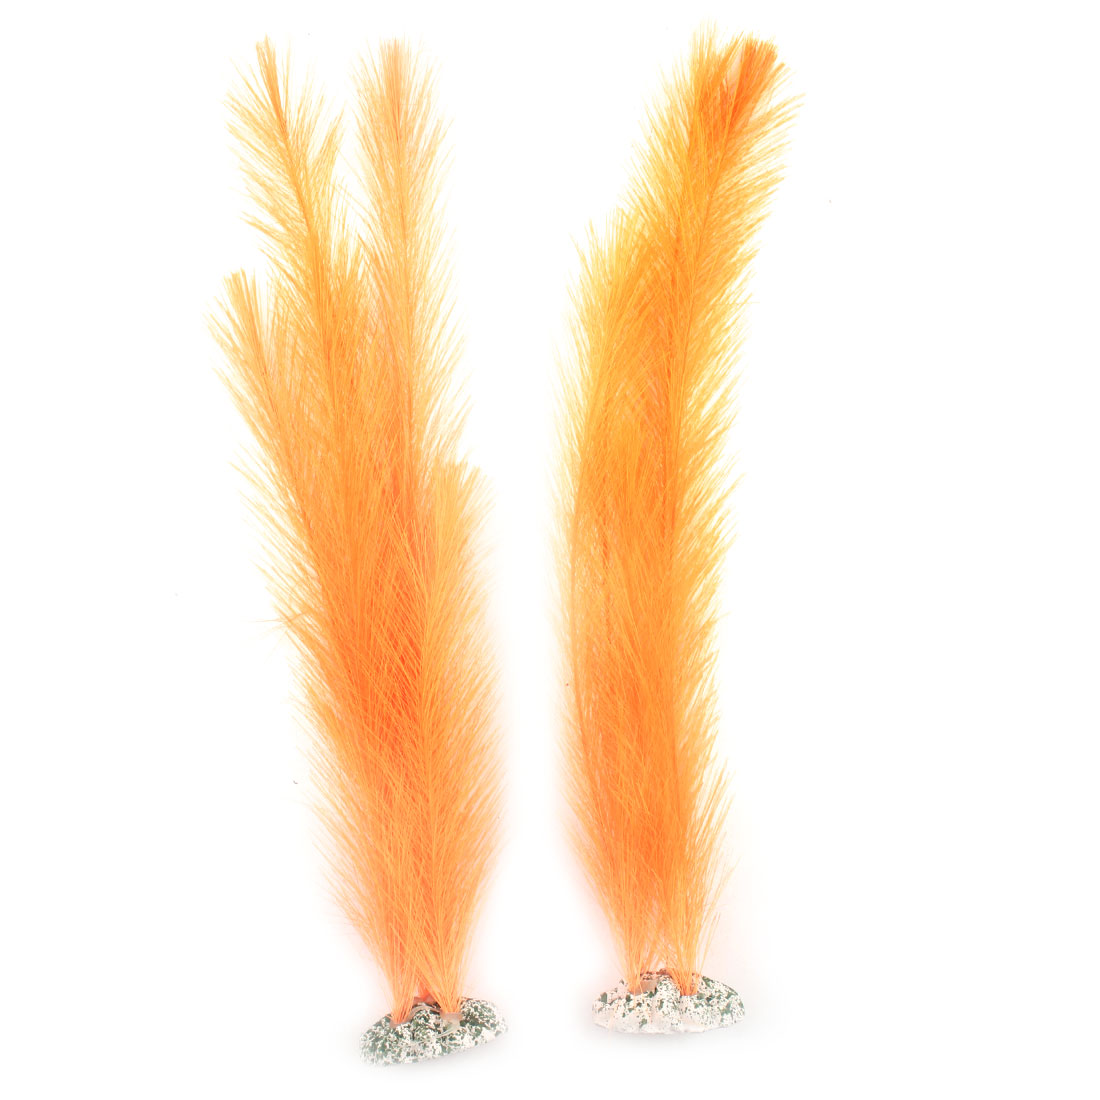 Fish Tank Orange Nylon Artificial Water Grass Ornament 38cm Height 2pcs